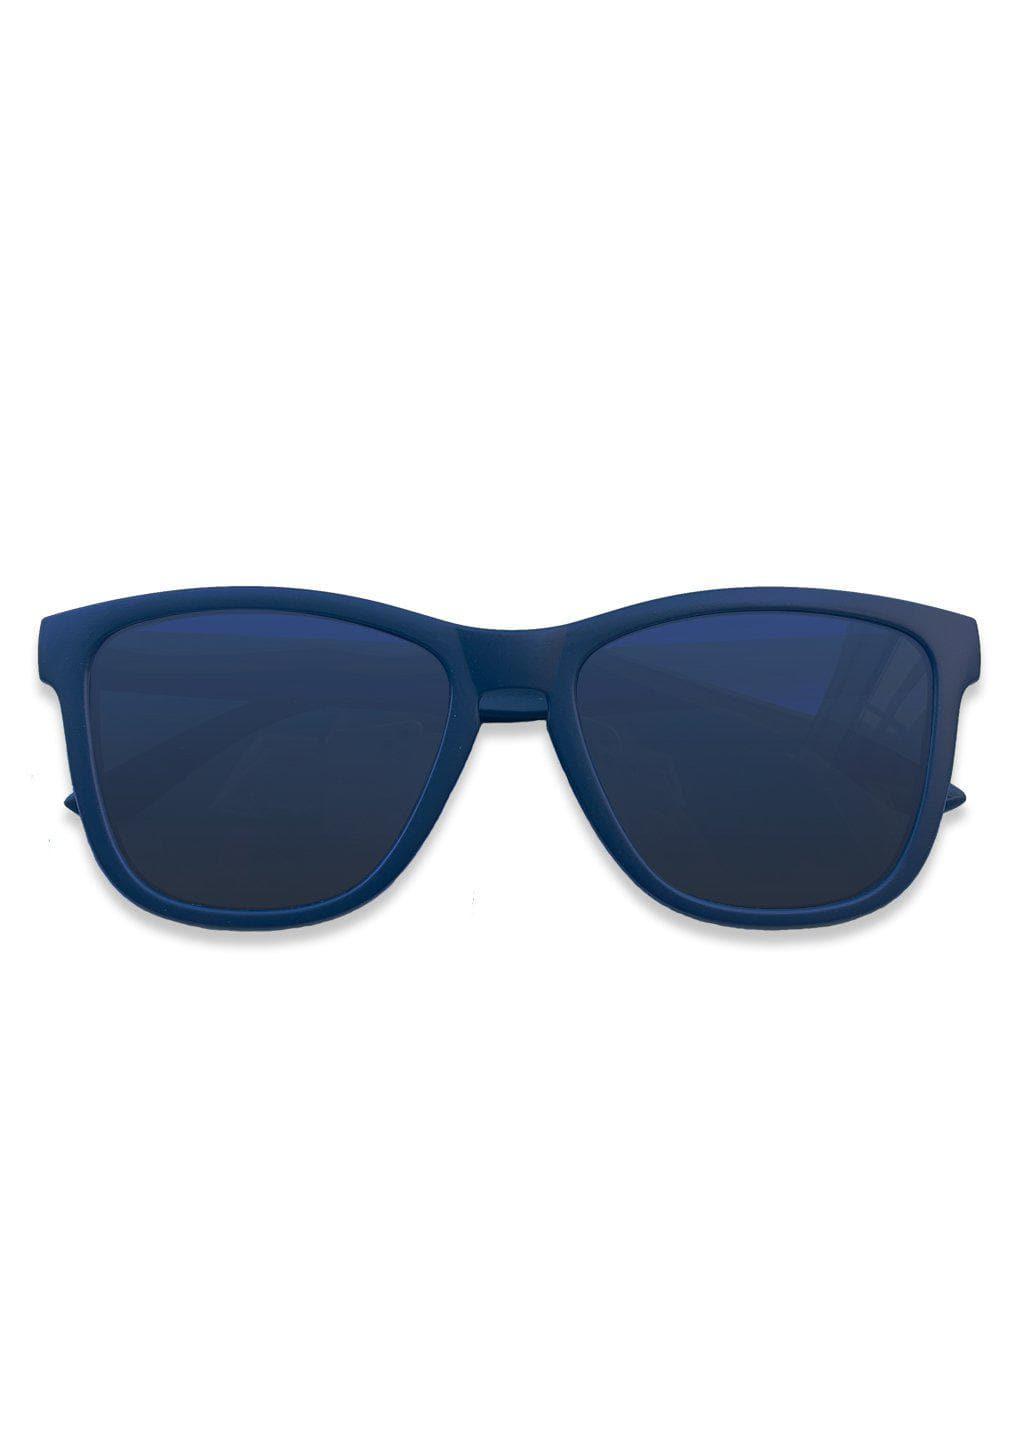 Our Mood V2 is an improved version of our last wayfarers. Plastic body for great quality and durabilty. This is Navy with a matte blue frame and gradient blue lenses. From the front.